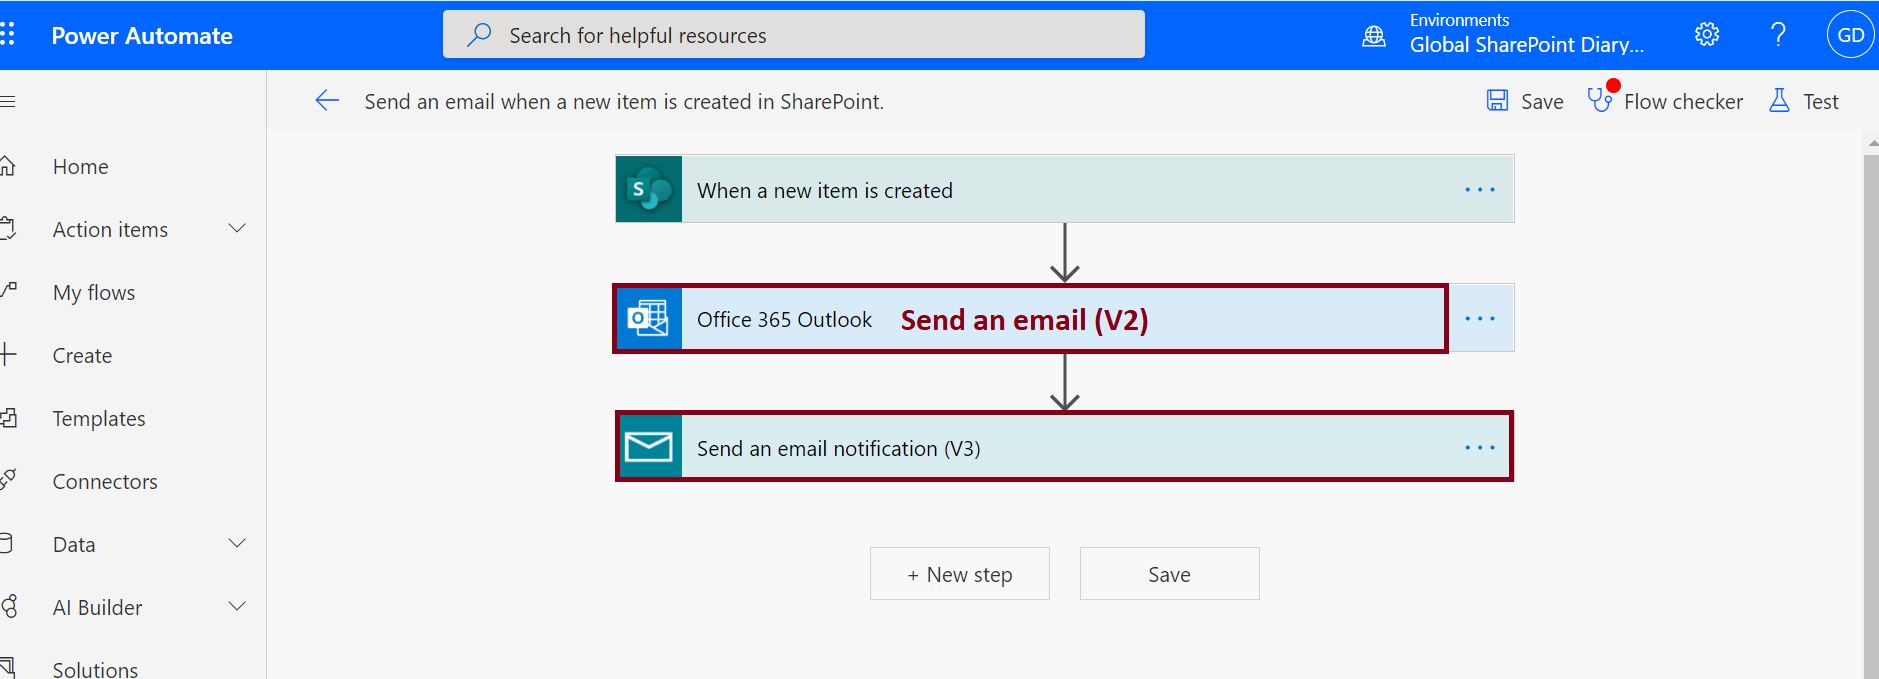 Send and email (V2) and Send an email notification(V3) Power Automate Action